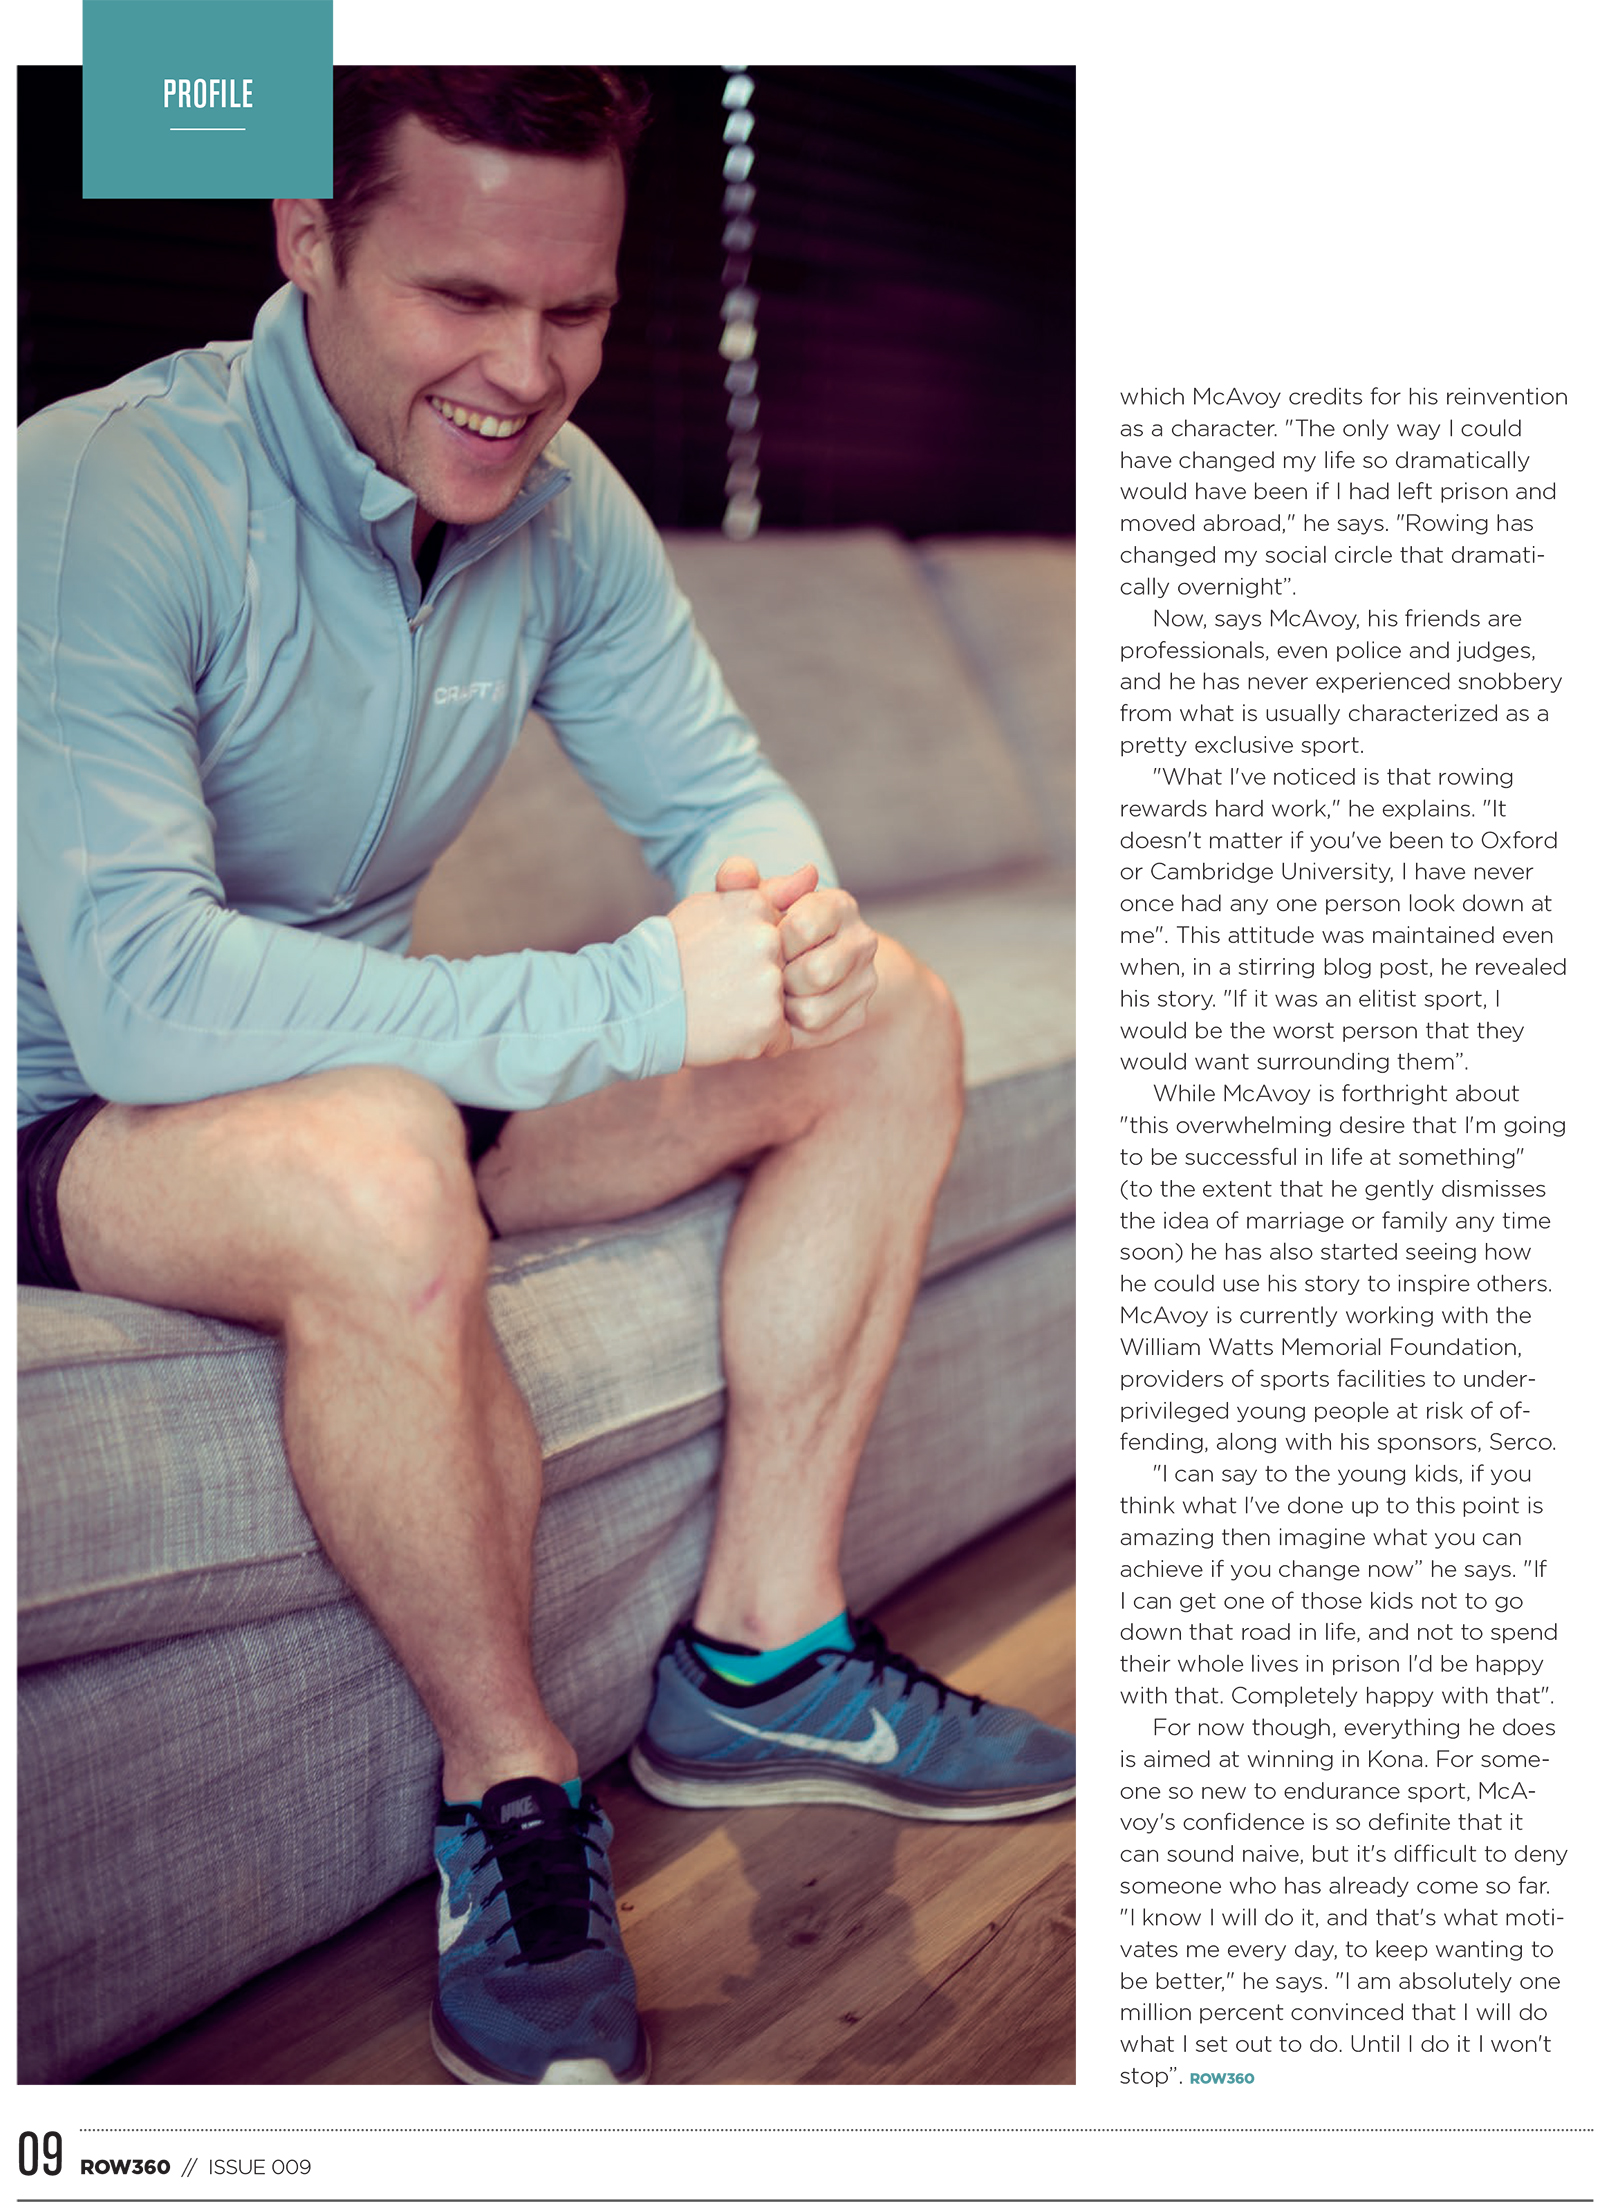 Row360 - Issue 009 - John McAvoy-5.jpg